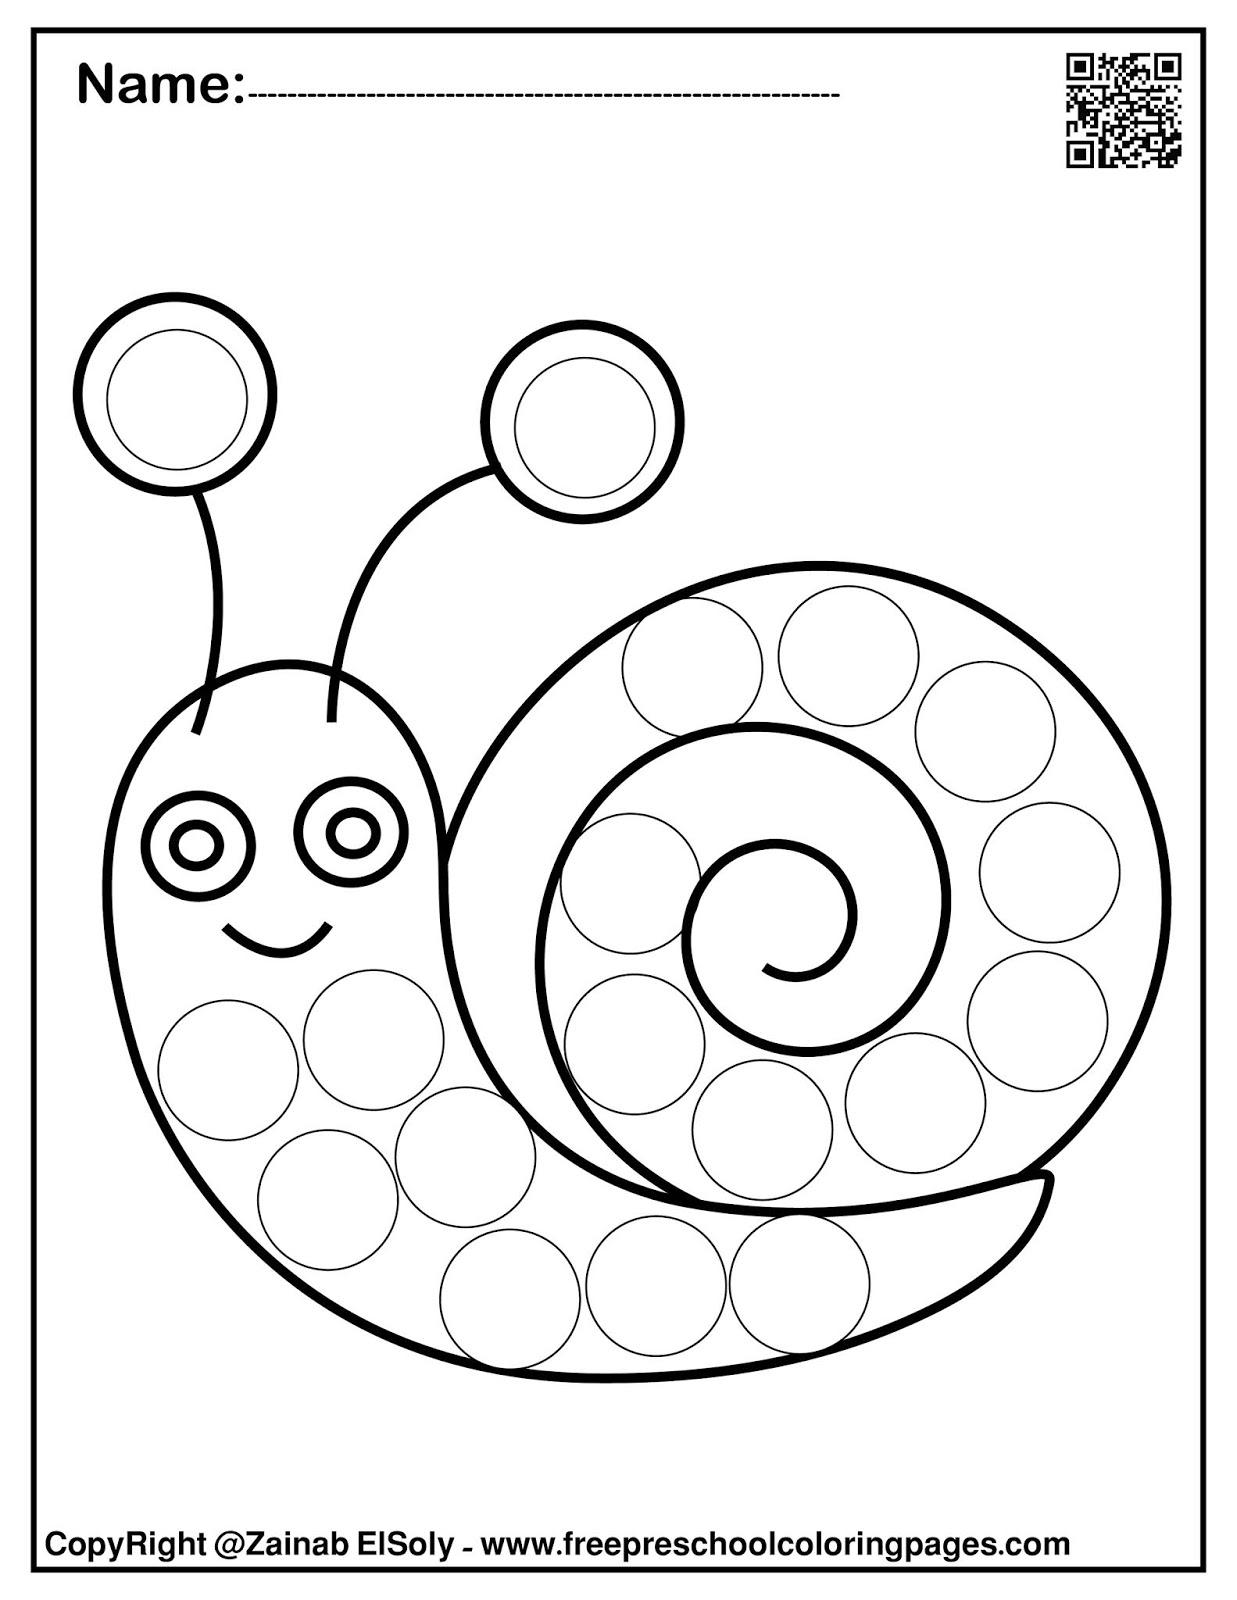 Dot Marker Coloring Pages Free | Colorpaints.co